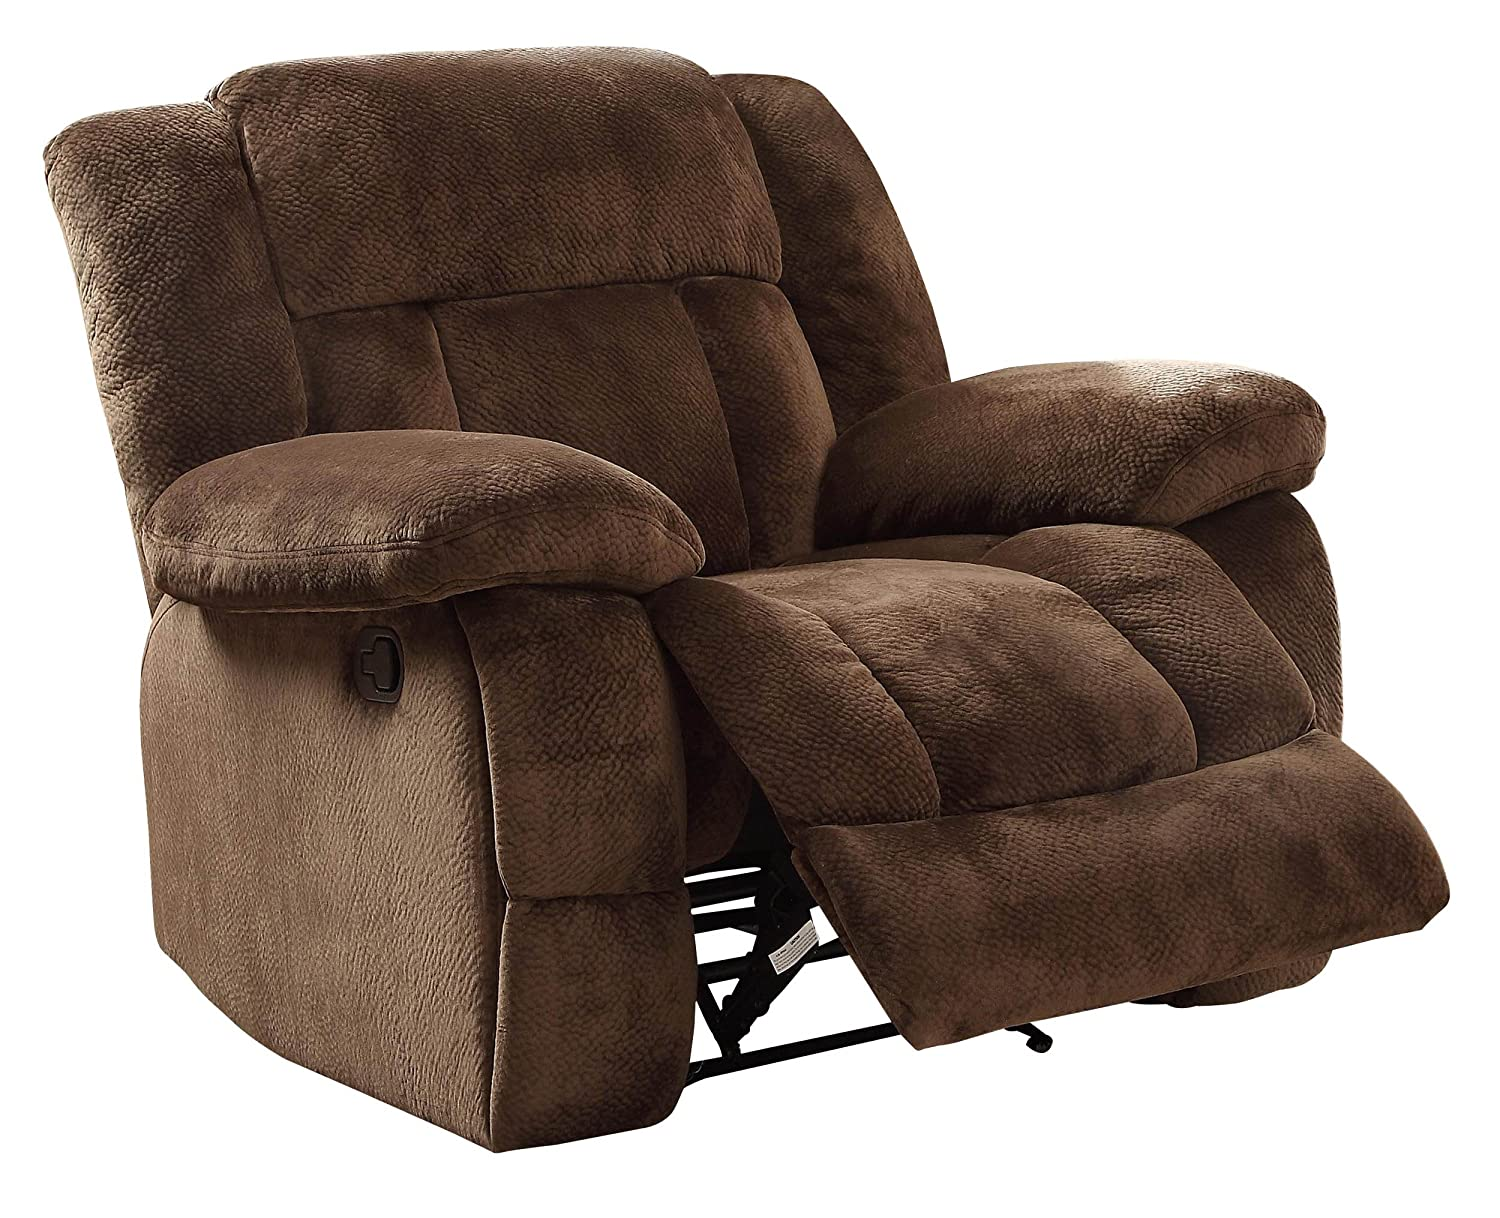 oversized recliners, oversized recliner, best oversized recliners, best oversized recliner